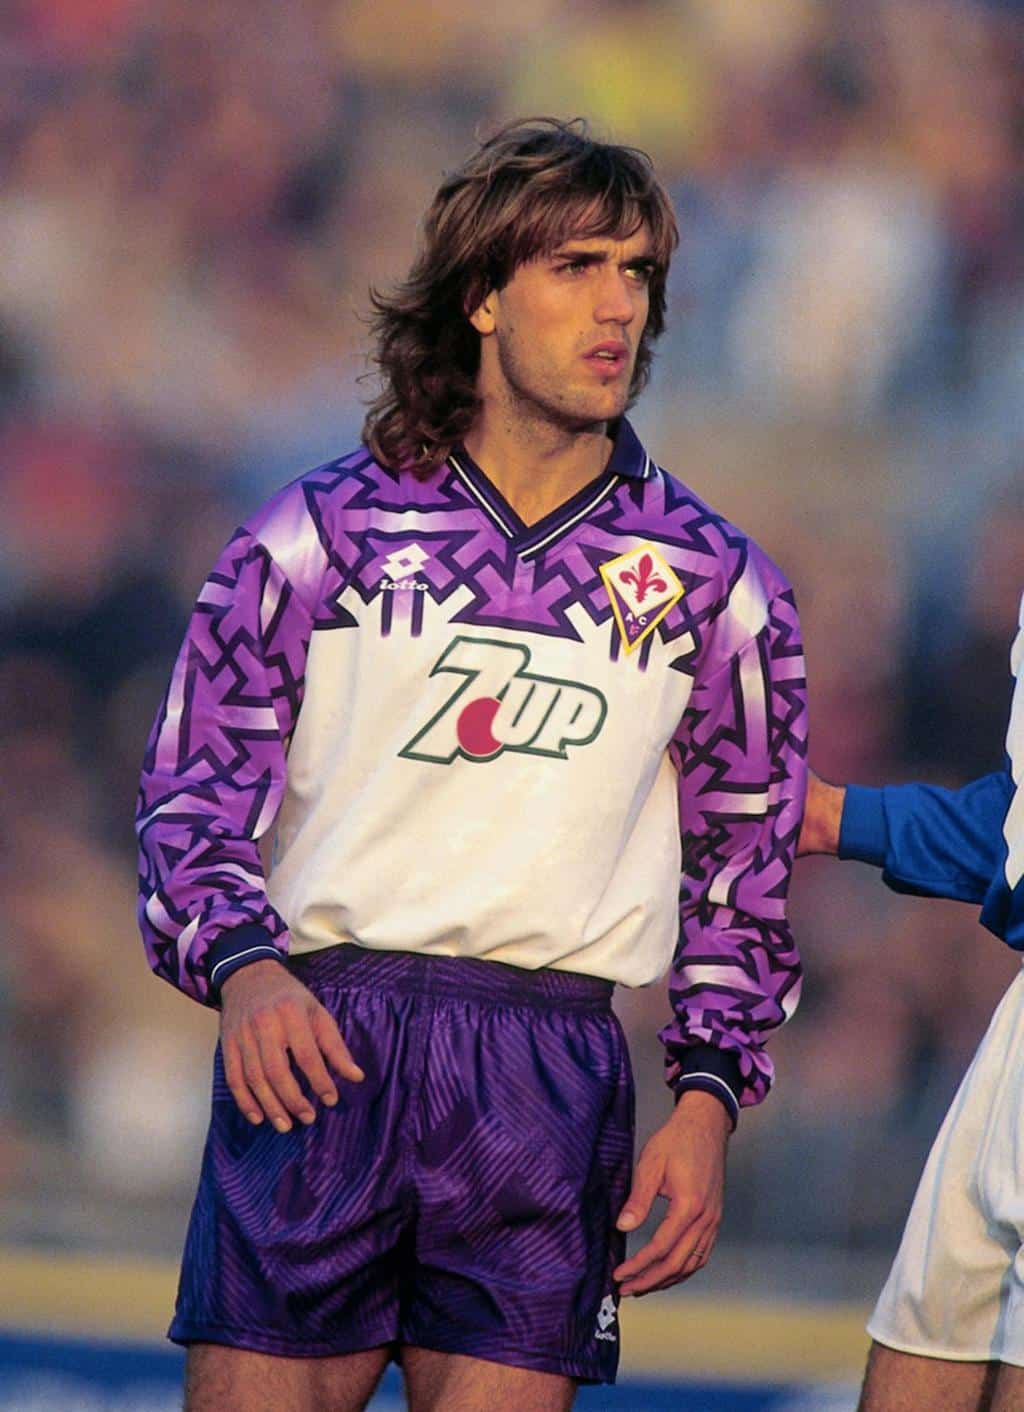 90s Italian Football Shirts: The Style Guide